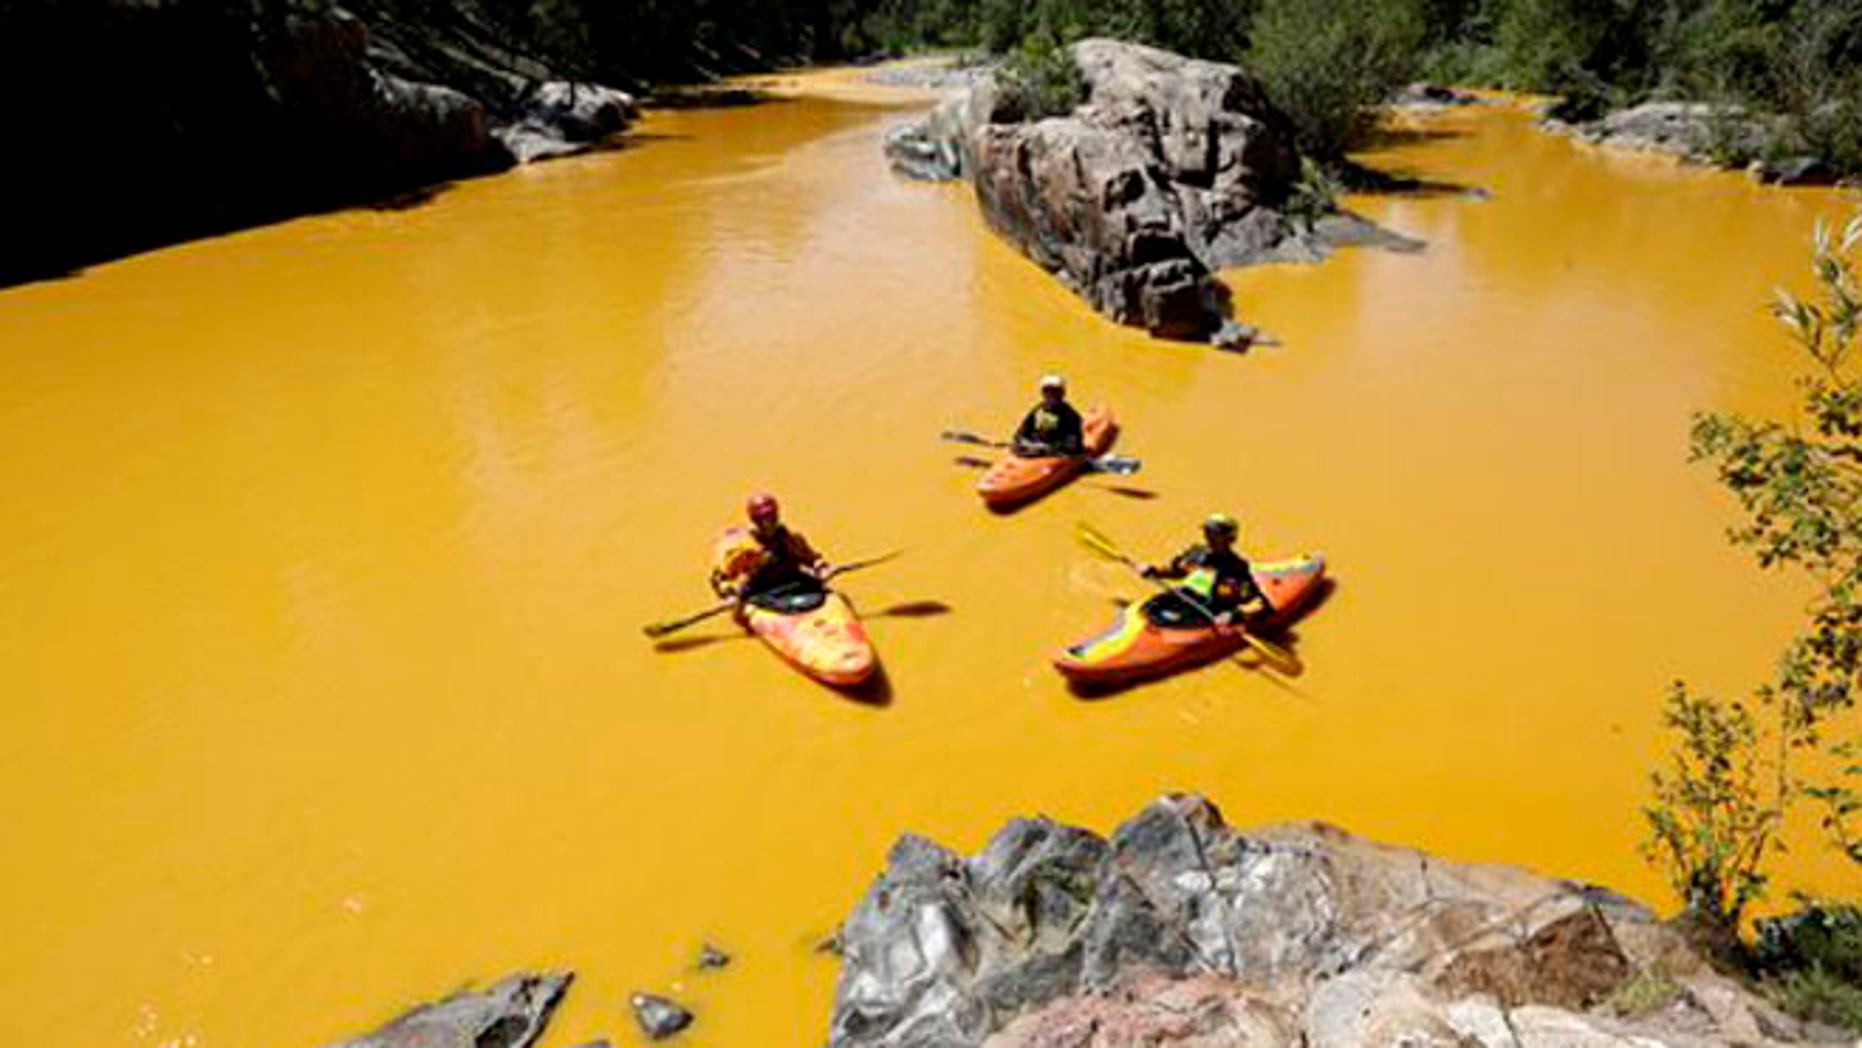 FILE - In this Aug. 6, 2015 file photo, people kayak in the Animas River near Durango, Colo., in water colored from a mine waste spill.  The federal government and Colorado have made little progress in remedying damages from the 2015 release of millions of gallons of wastewater from a southern Colorado mine, New Mexico's top prosecutor charged in a pair of scathing letters sent to officials on Friday, May 20, 2016.(Jerry McBride/The Durango Herald via AP, File) MANDATORY CREDIT